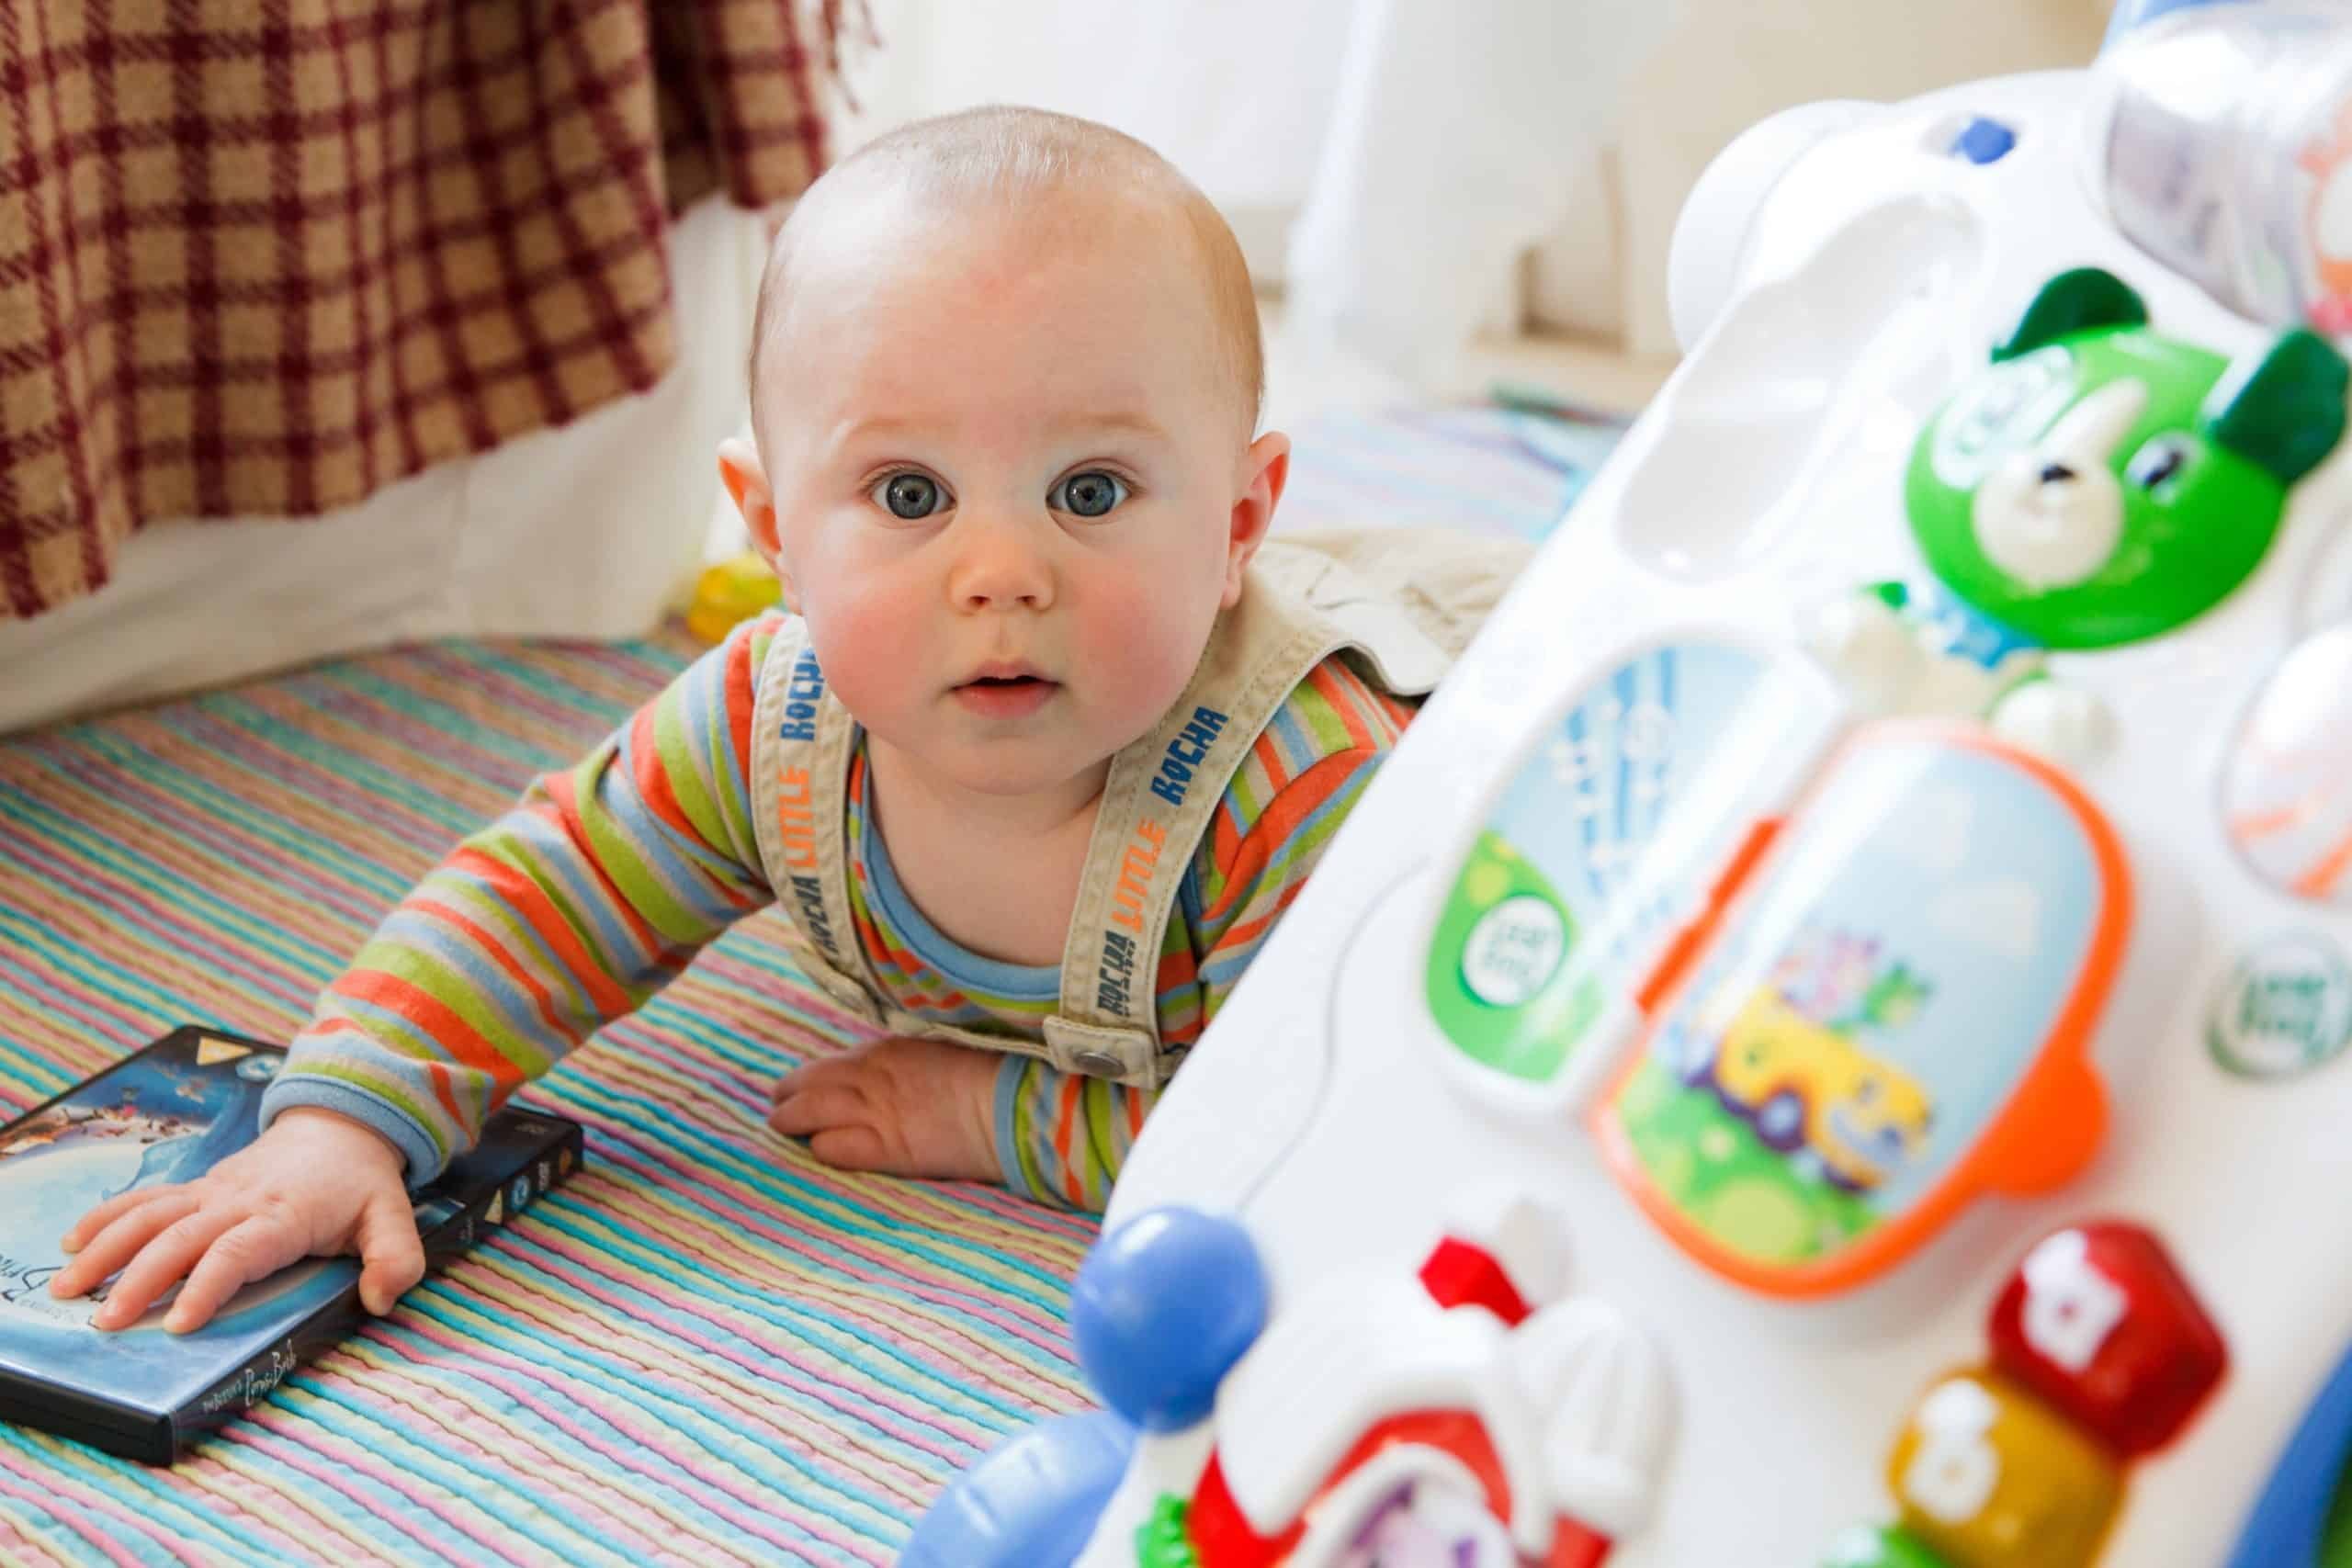 Newborn Babies: 11 Facts You Need To Know